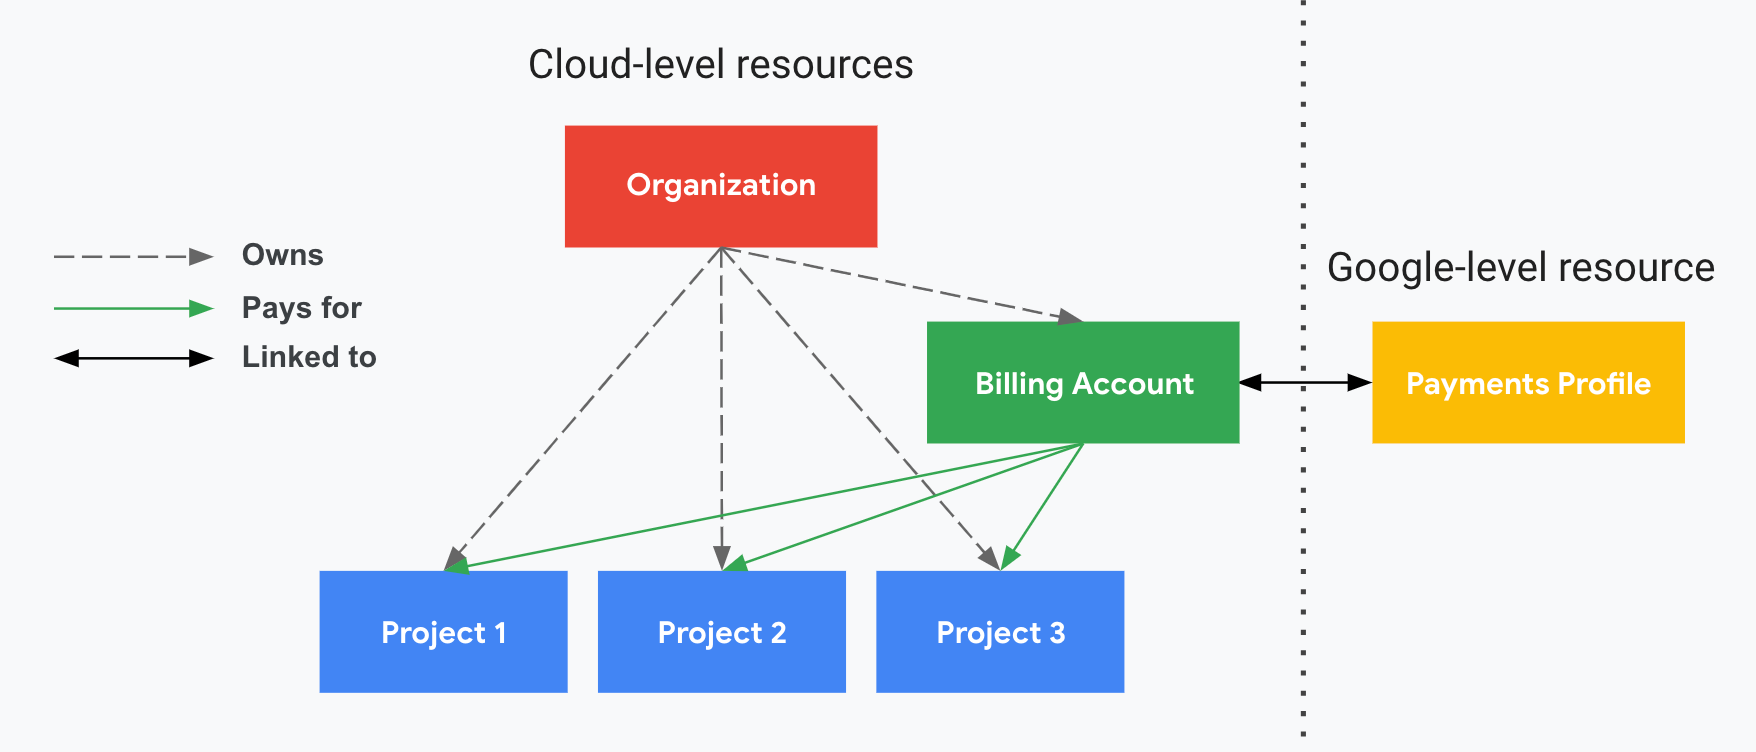 Describes how projects relate to your Cloud Billing account,          the organization, and your payments profile. One side shows your          Cloud-level resources (organization, Cloud Billing account and          associated projects) and the other side, divided by a vertical dotted          line, shows your Google-level resource (a payments profile). Your          projects are paid for by your Cloud Billing account, which is          linked to your payments profile. The organization controls ownership          using Cloud IAM.